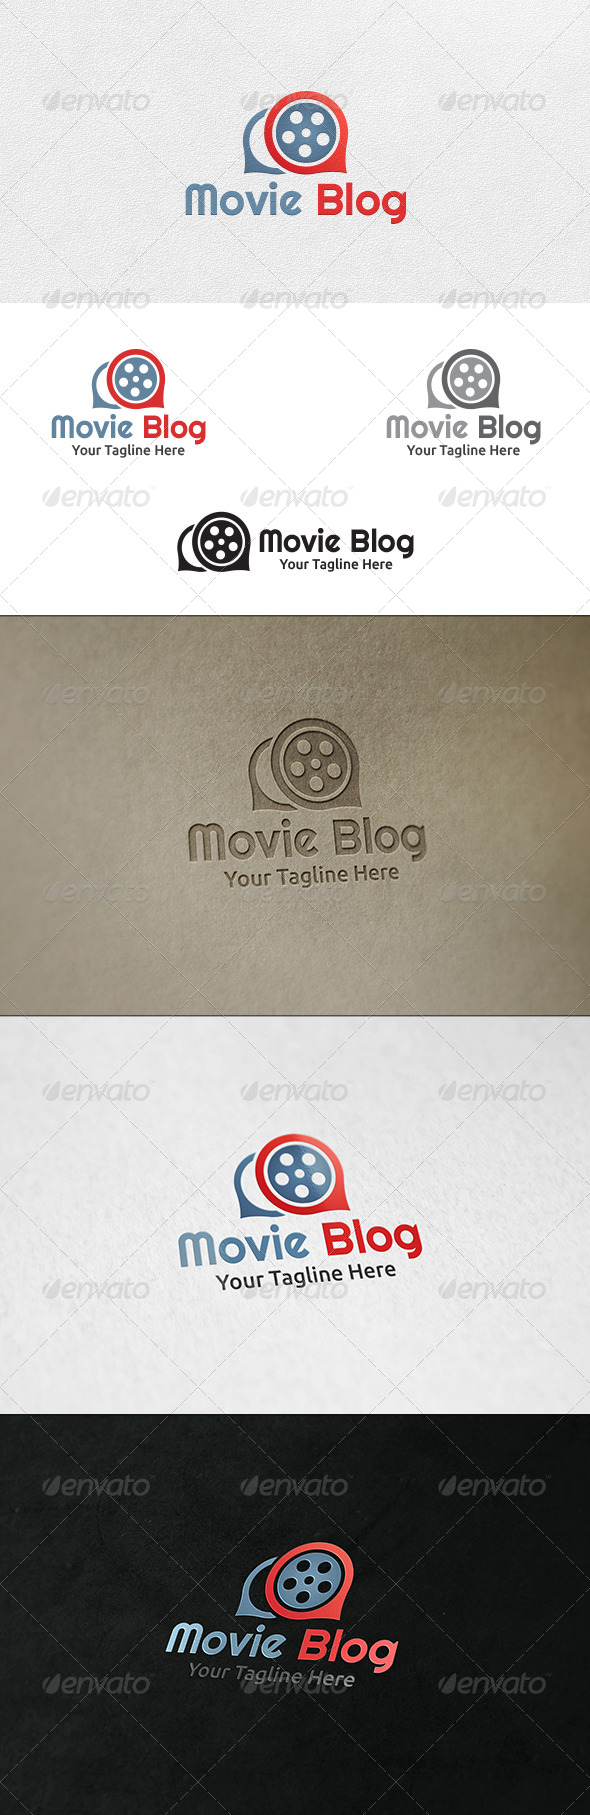 Movie Blog Logo Template